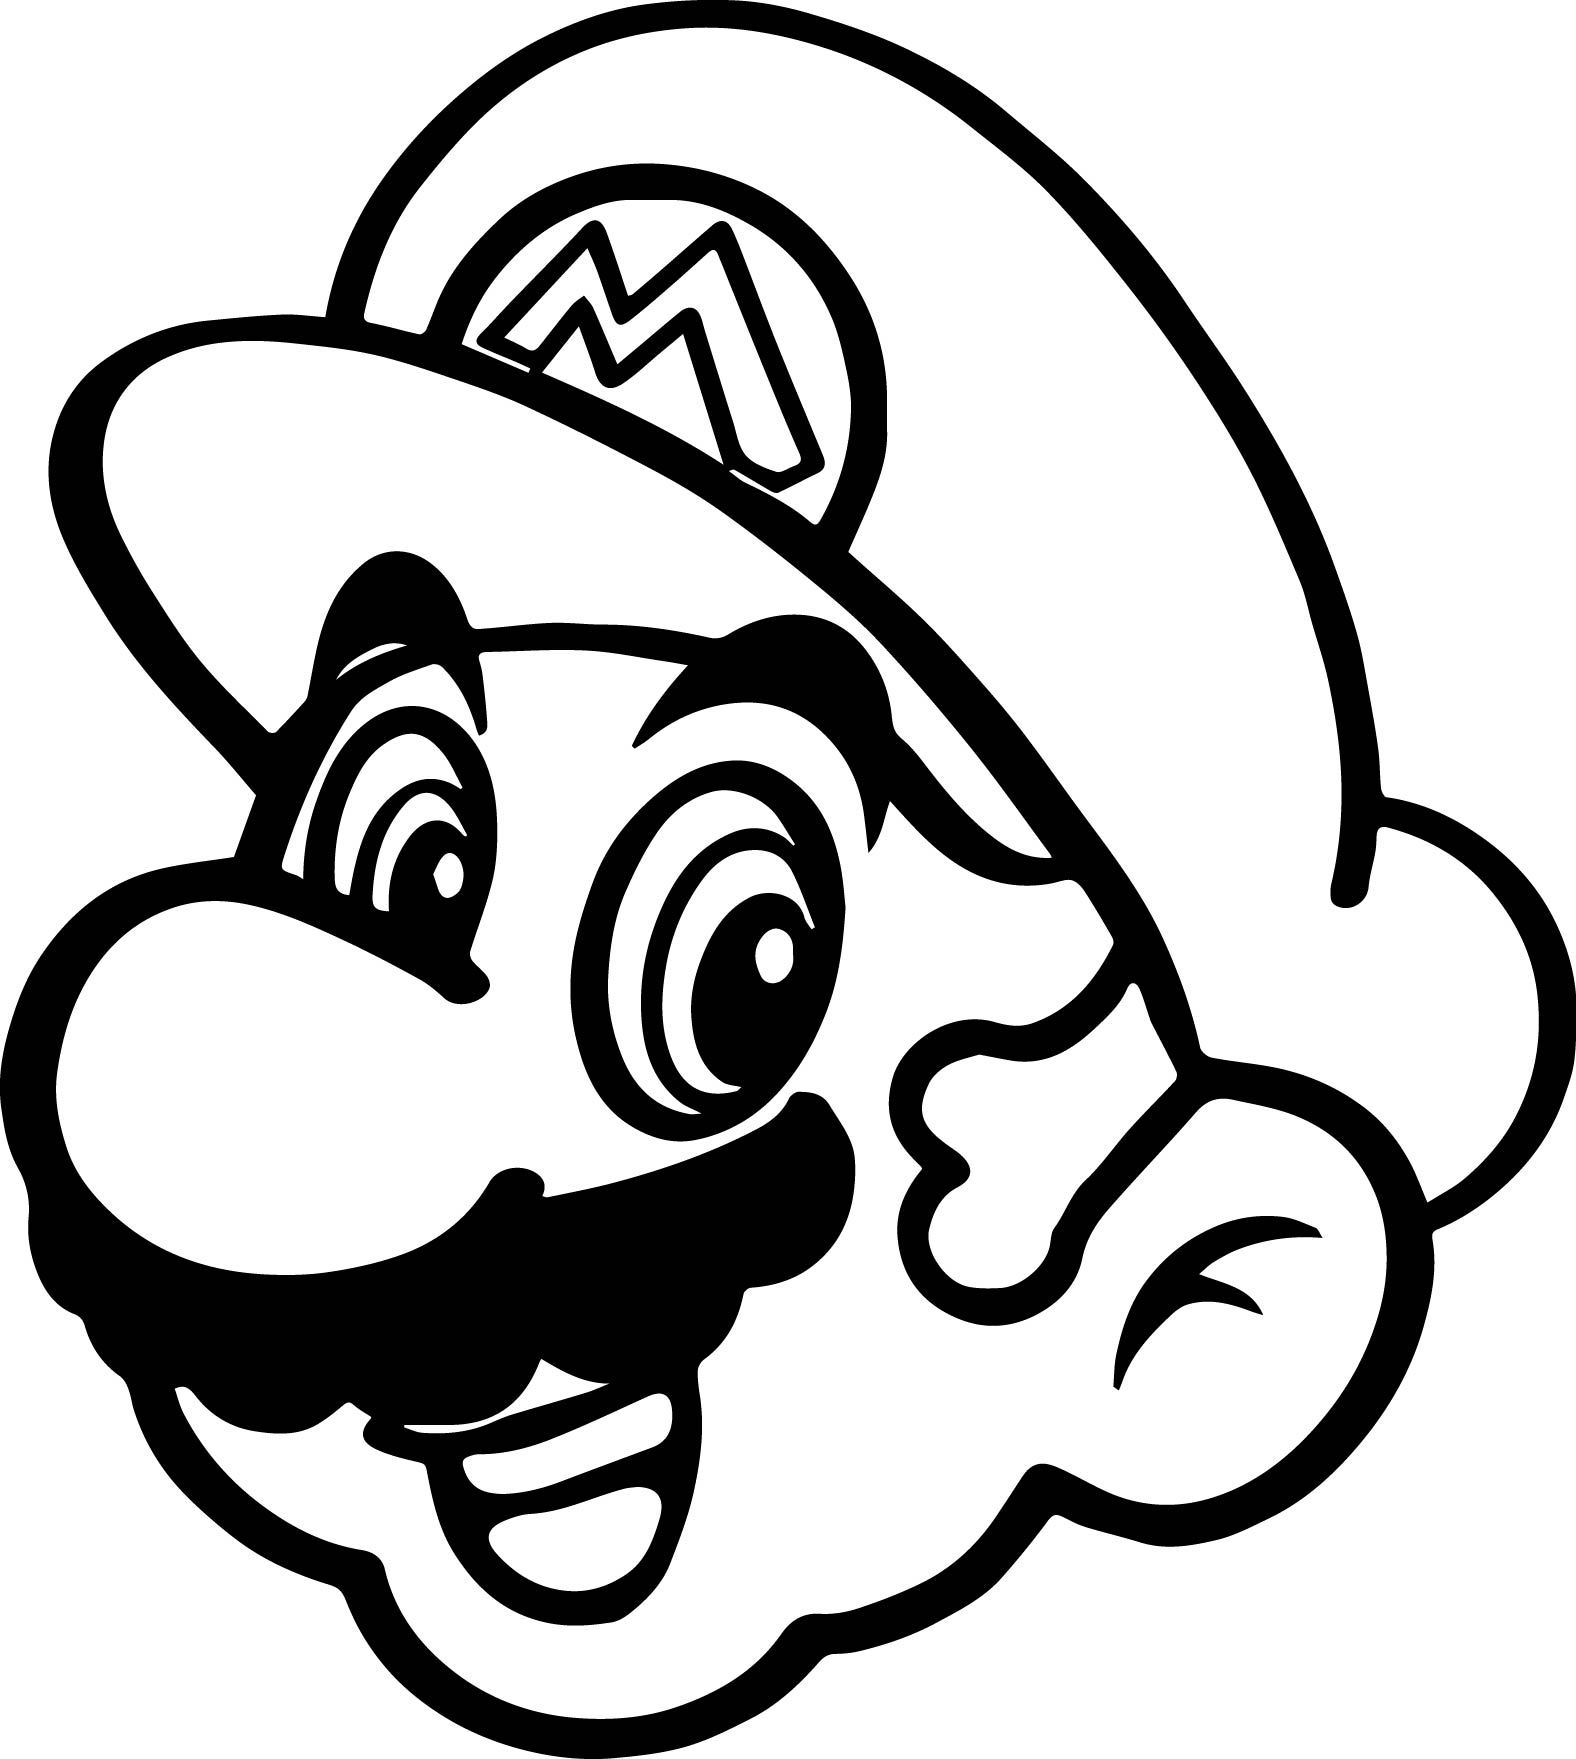 Mario clipart drawing, Mario drawing Transparent FREE for